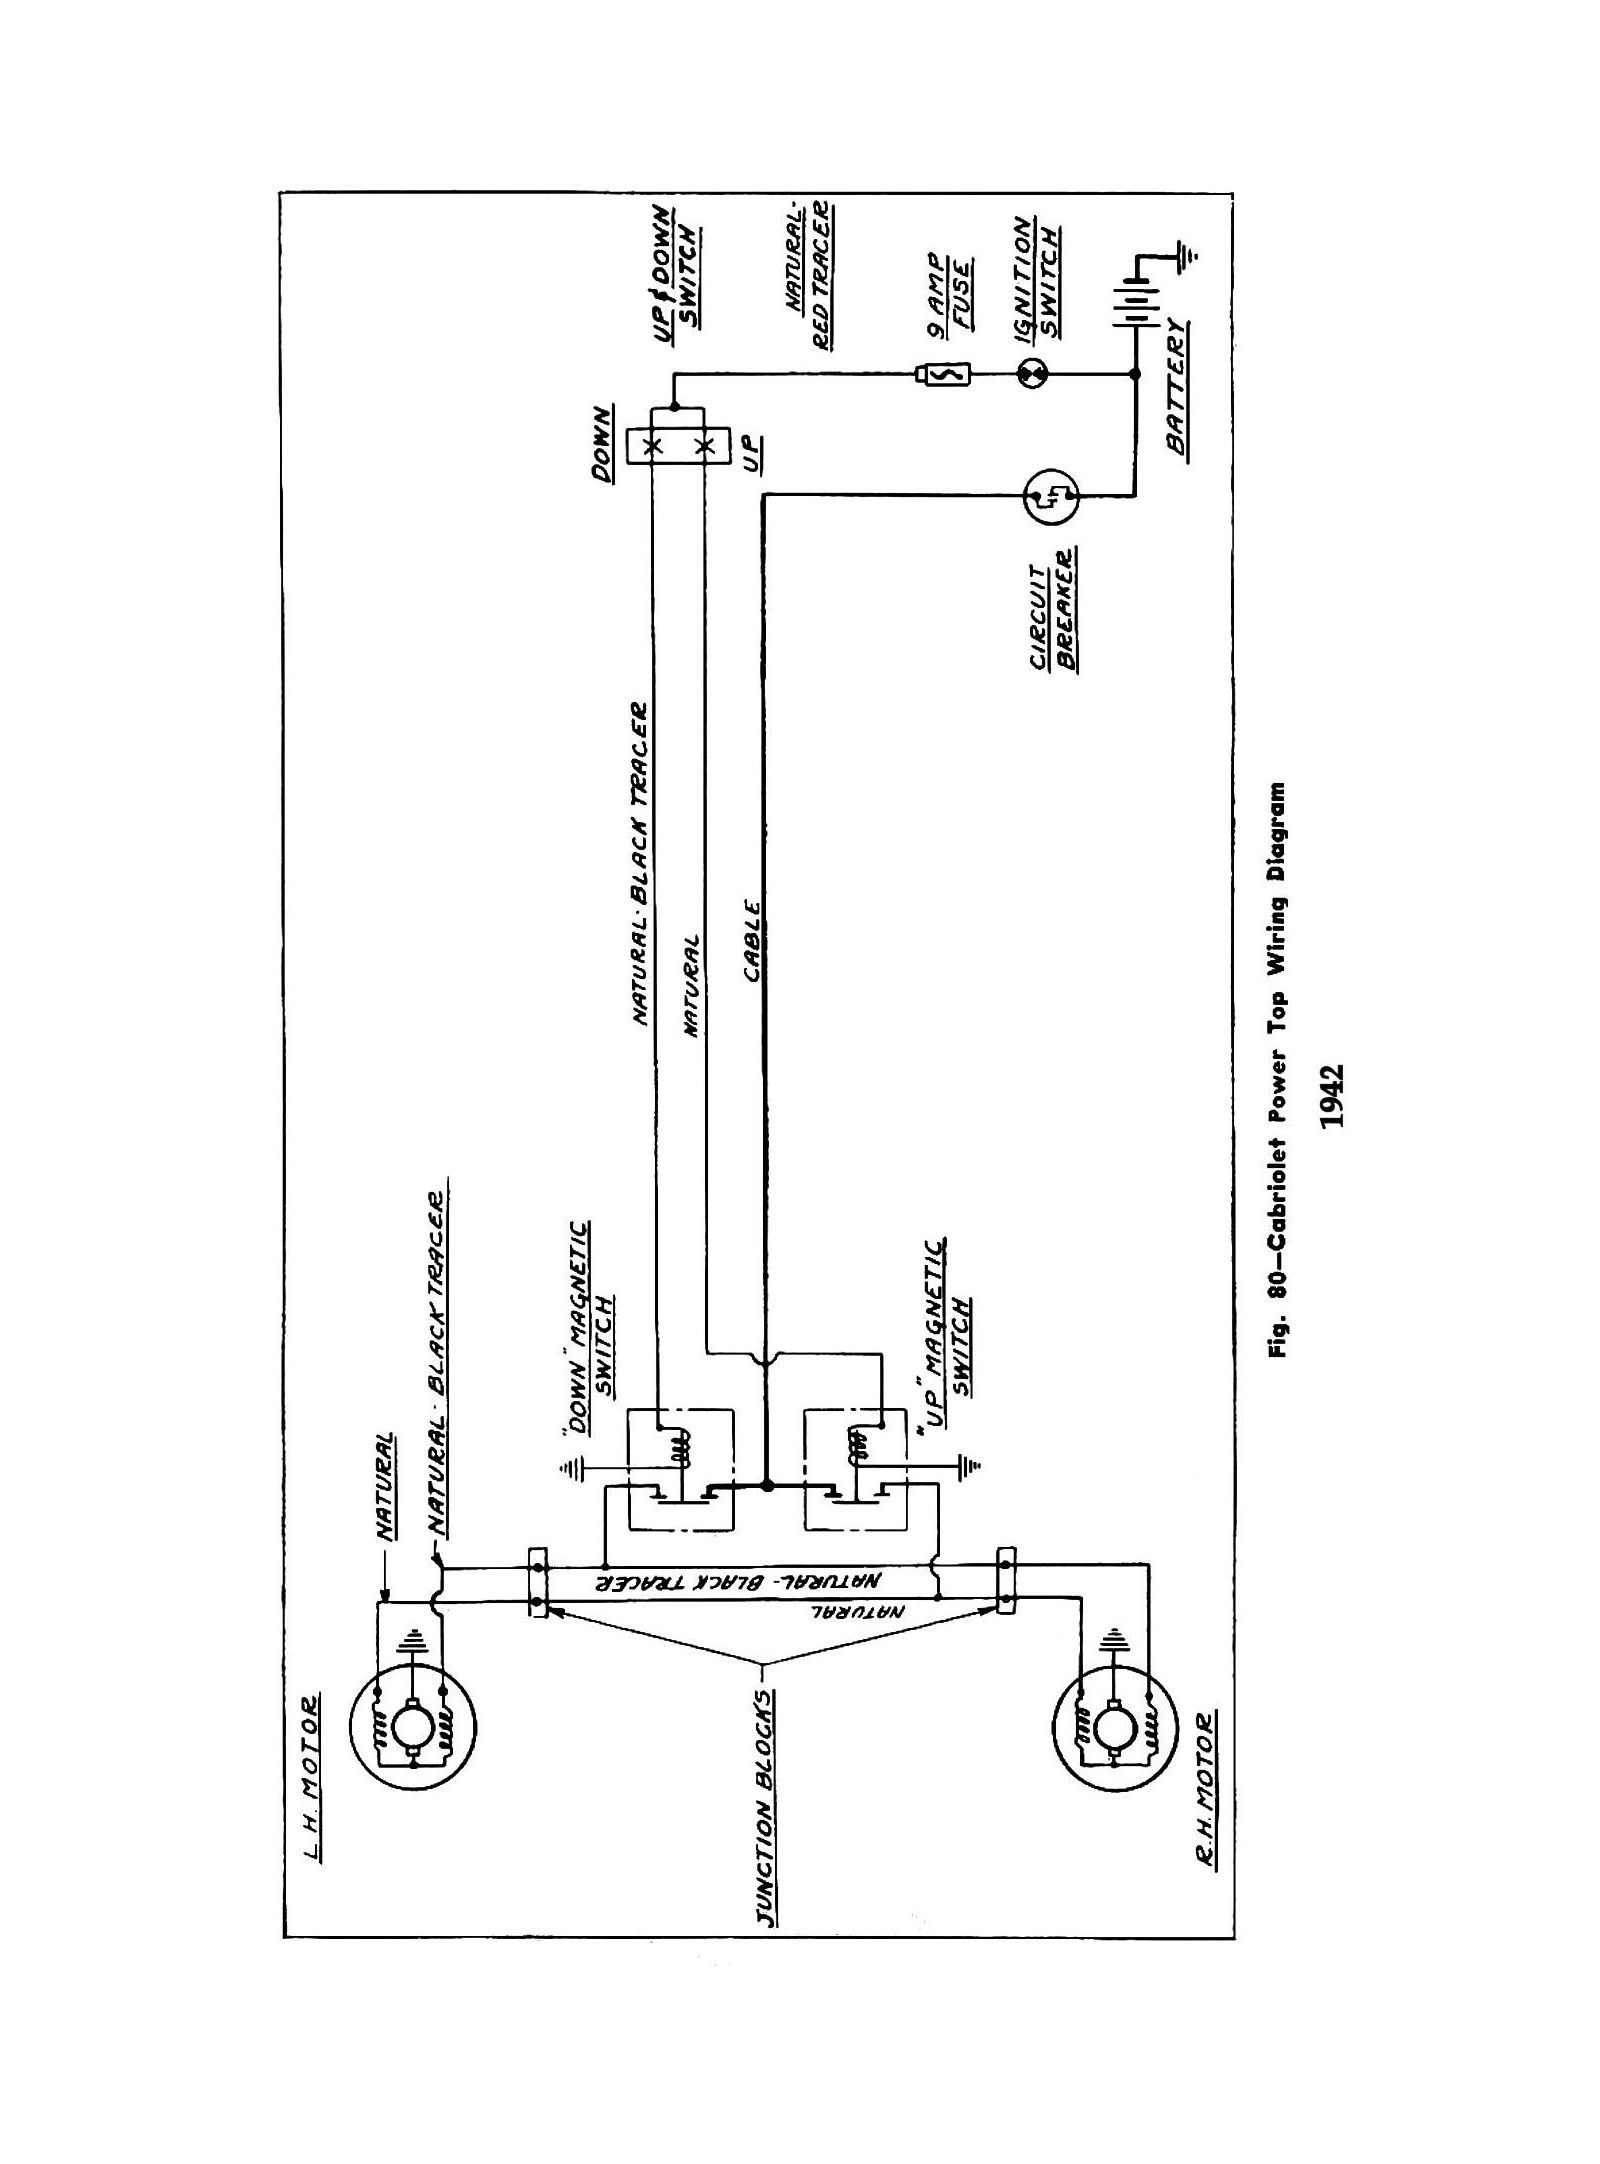 Chevy Wiring Diagrams 1973 Chevy Truck Electric Schematics Cluster 1984  Chevy K10 Headlight Wiring Diagram